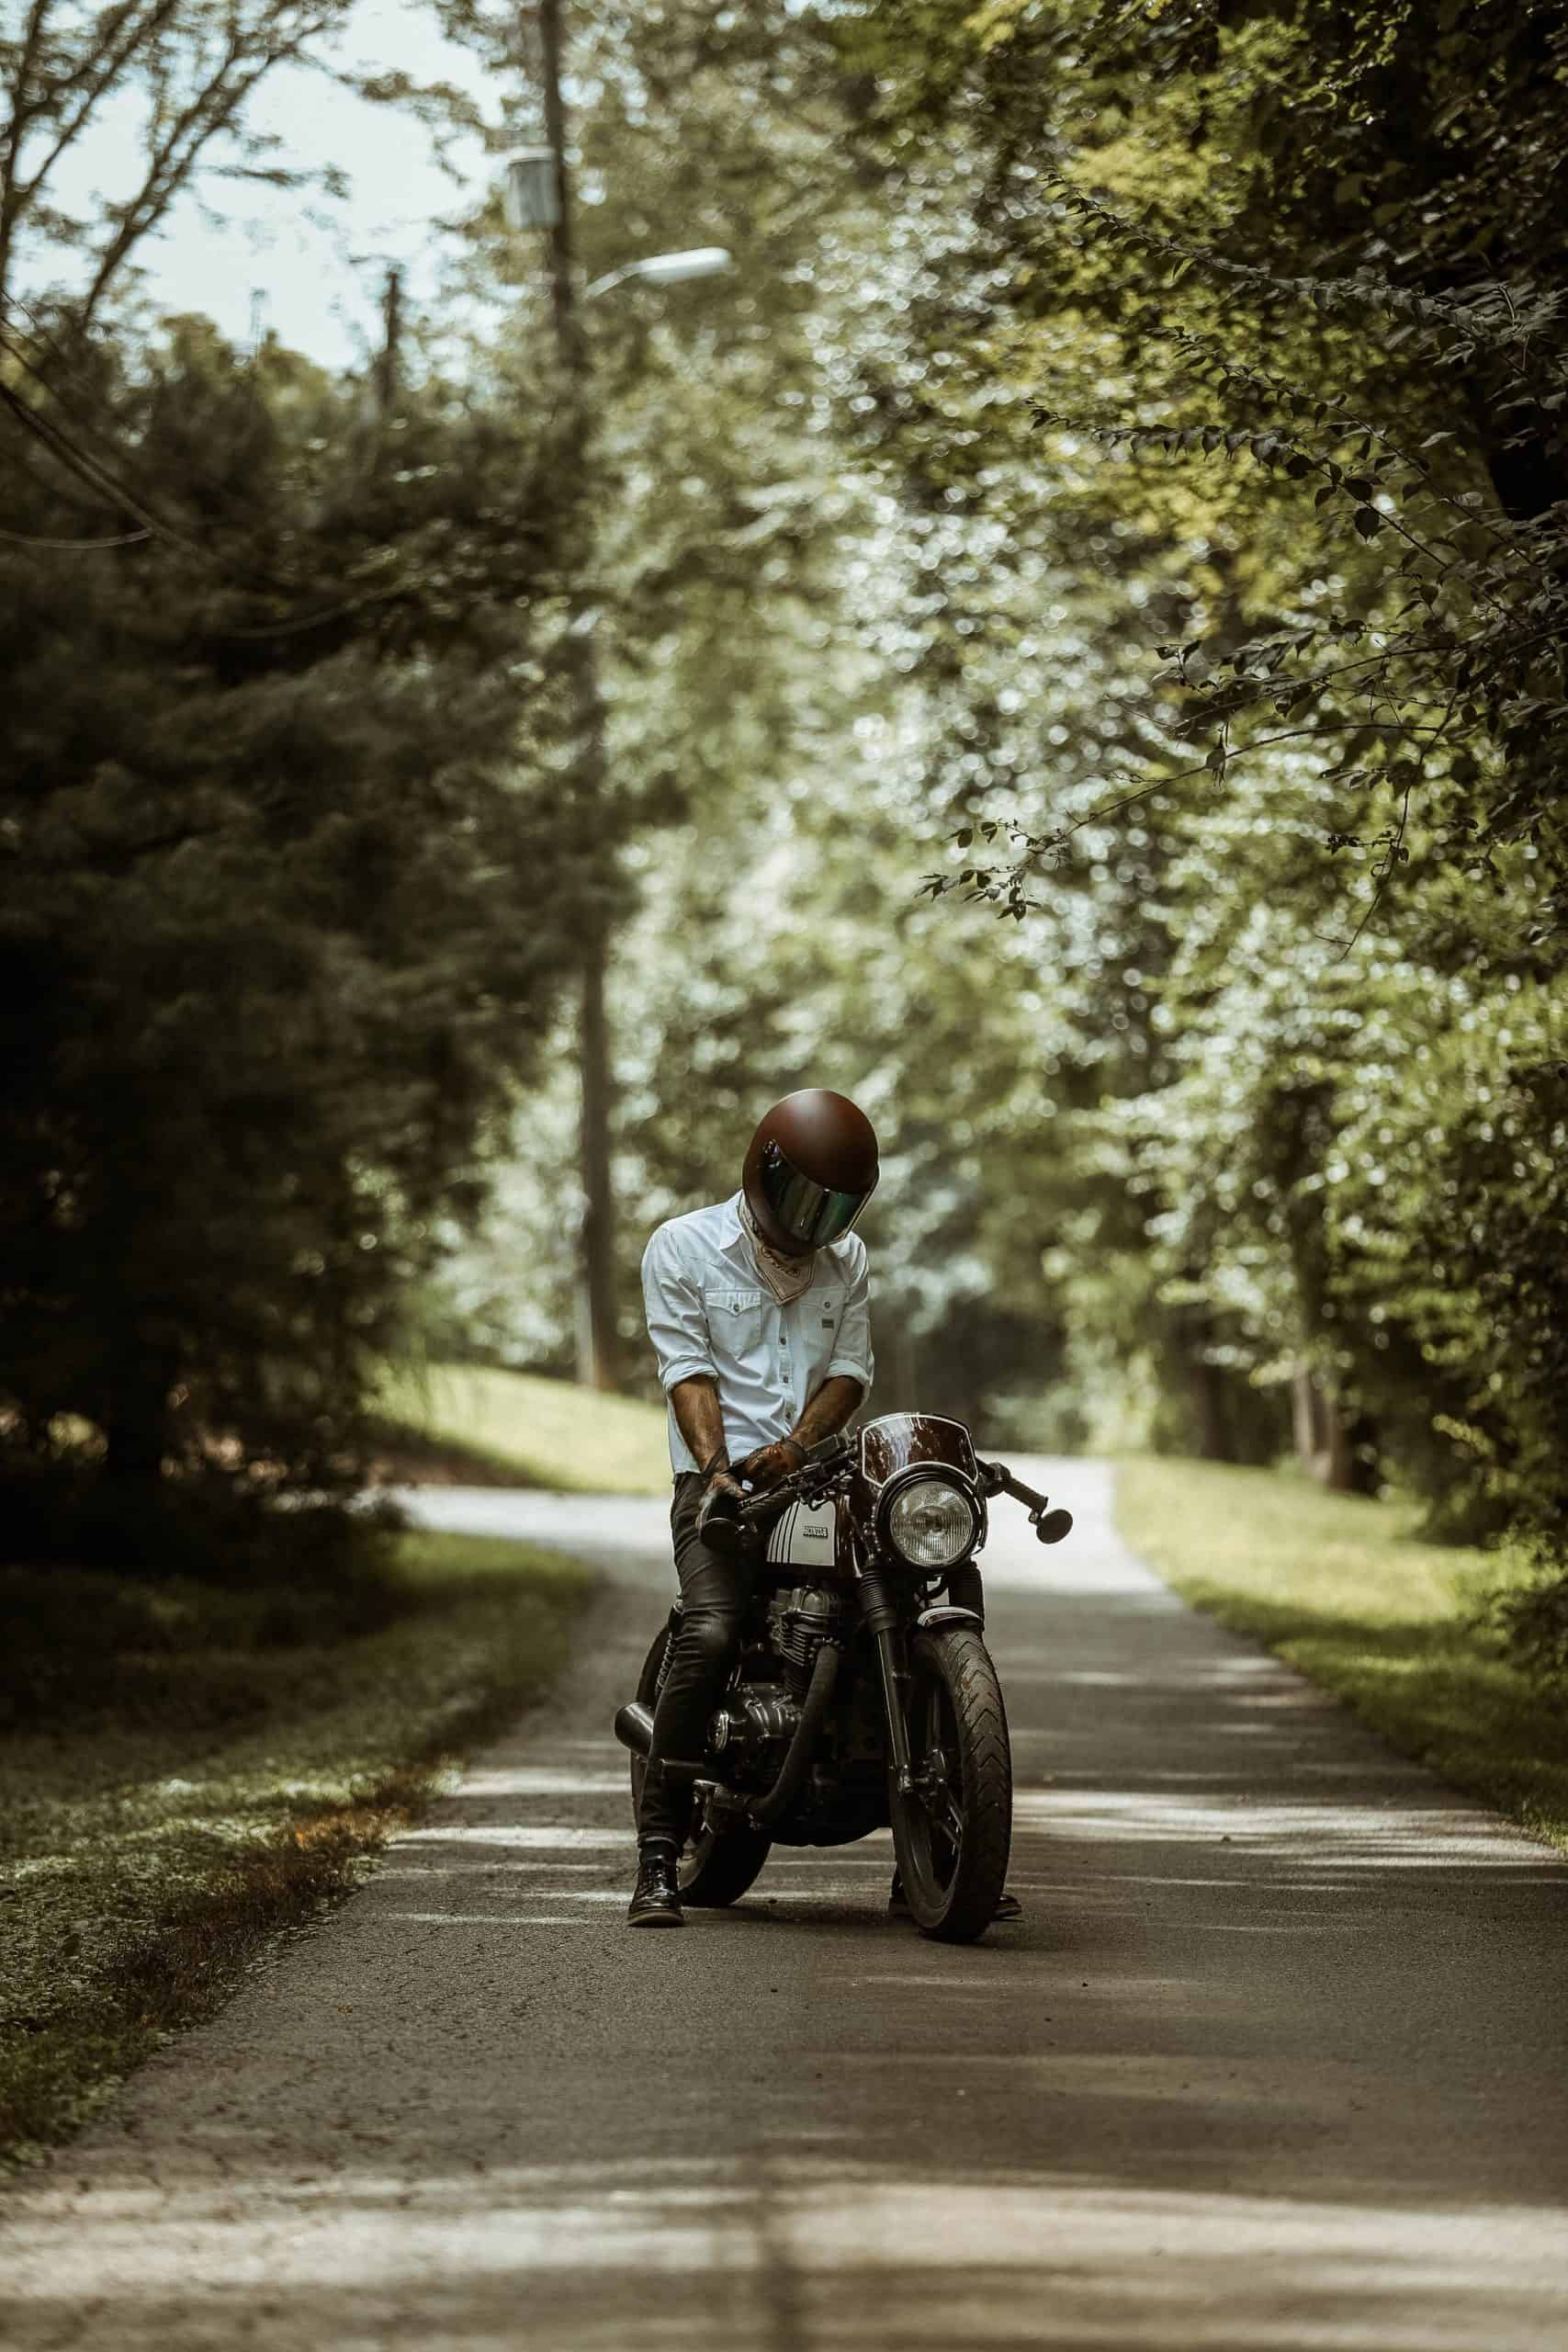 The Motorcycle Whisperer: Safety Tips